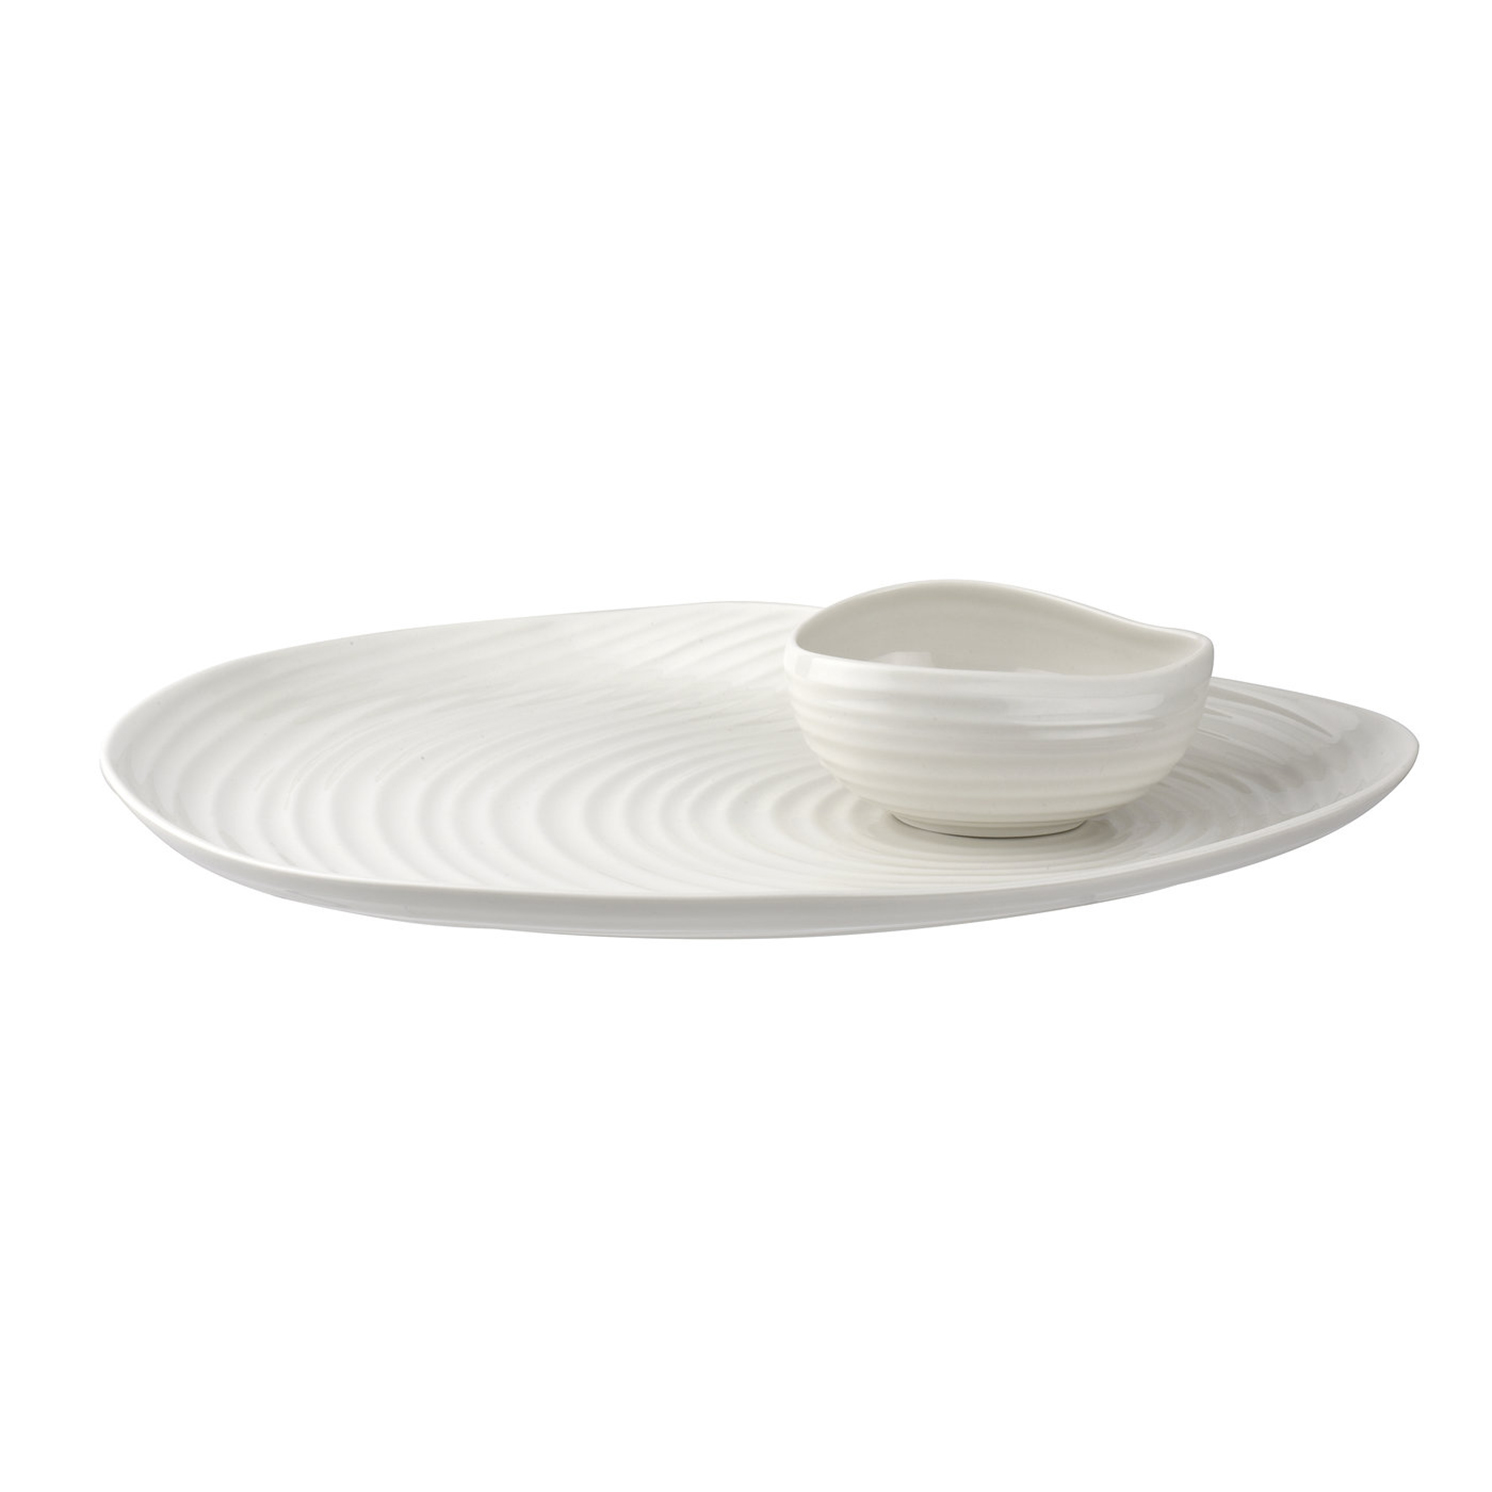 Sophie Conran for Portmeirion – Shell Shaped Serving Platter & Bowl in Gift Box